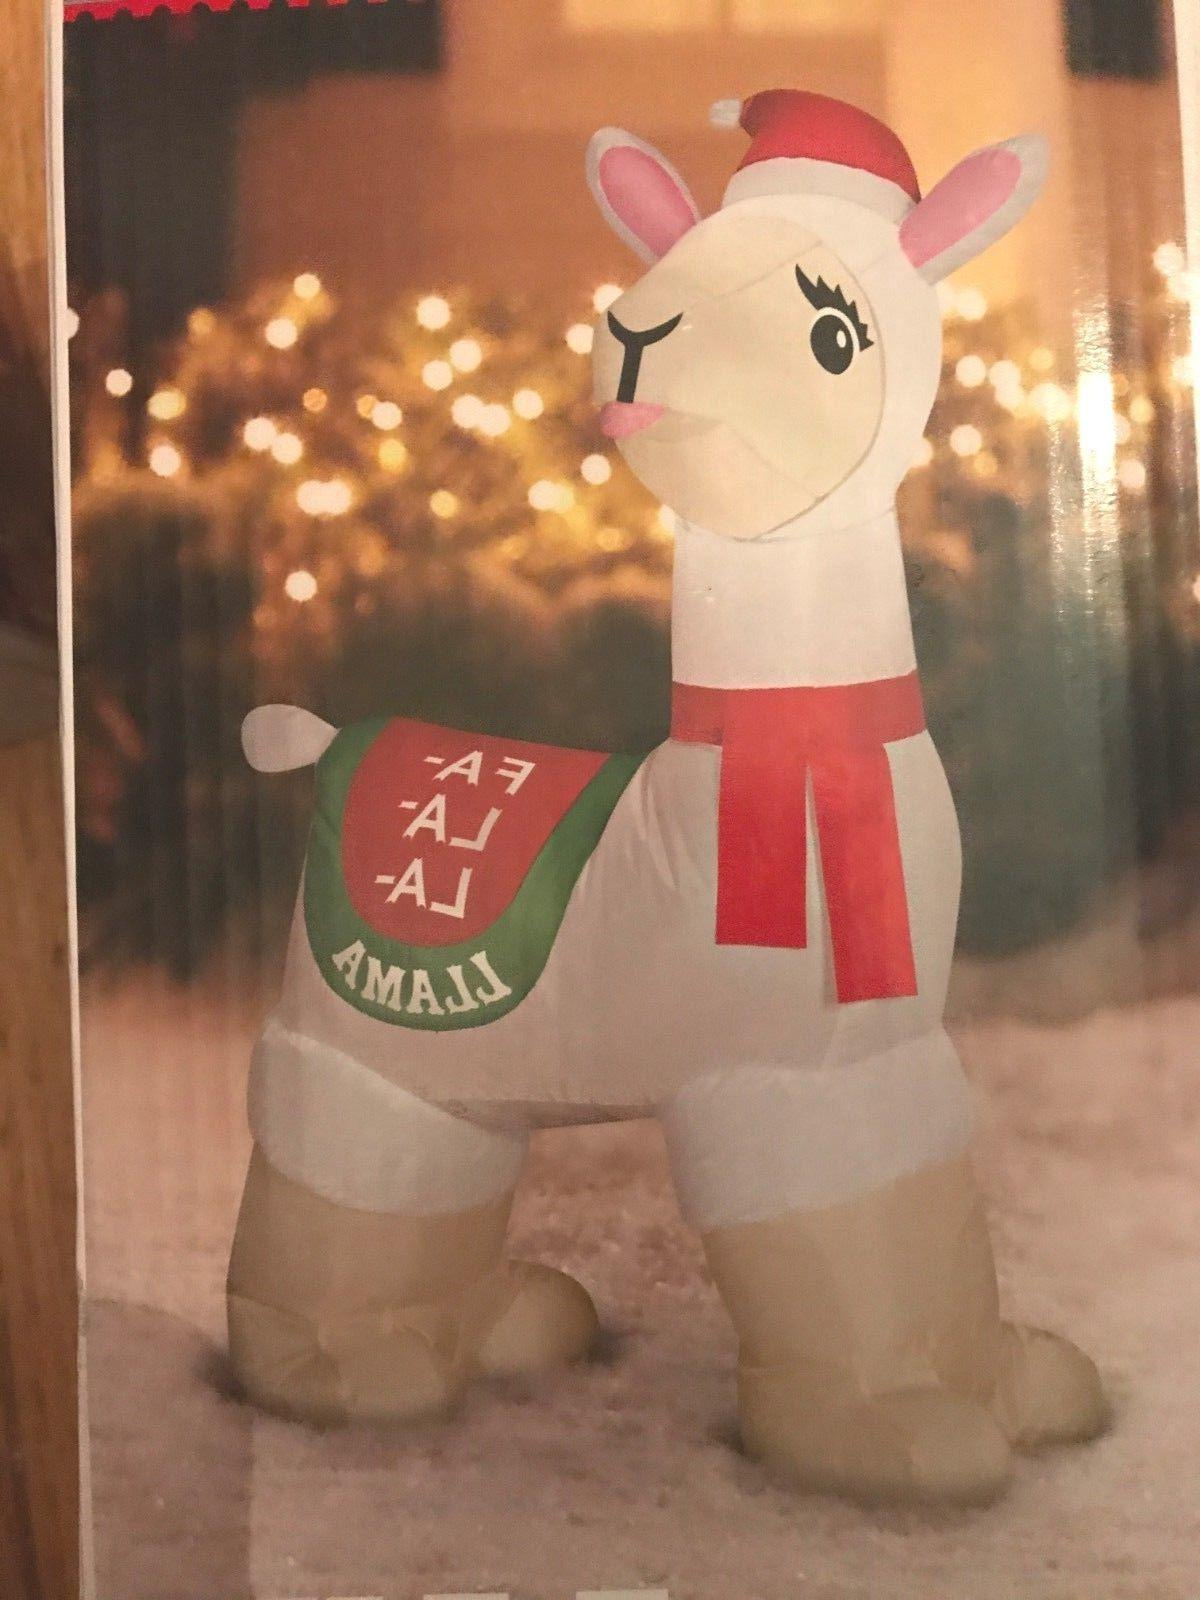 Llama Inflatable Yard 3.5 Tall